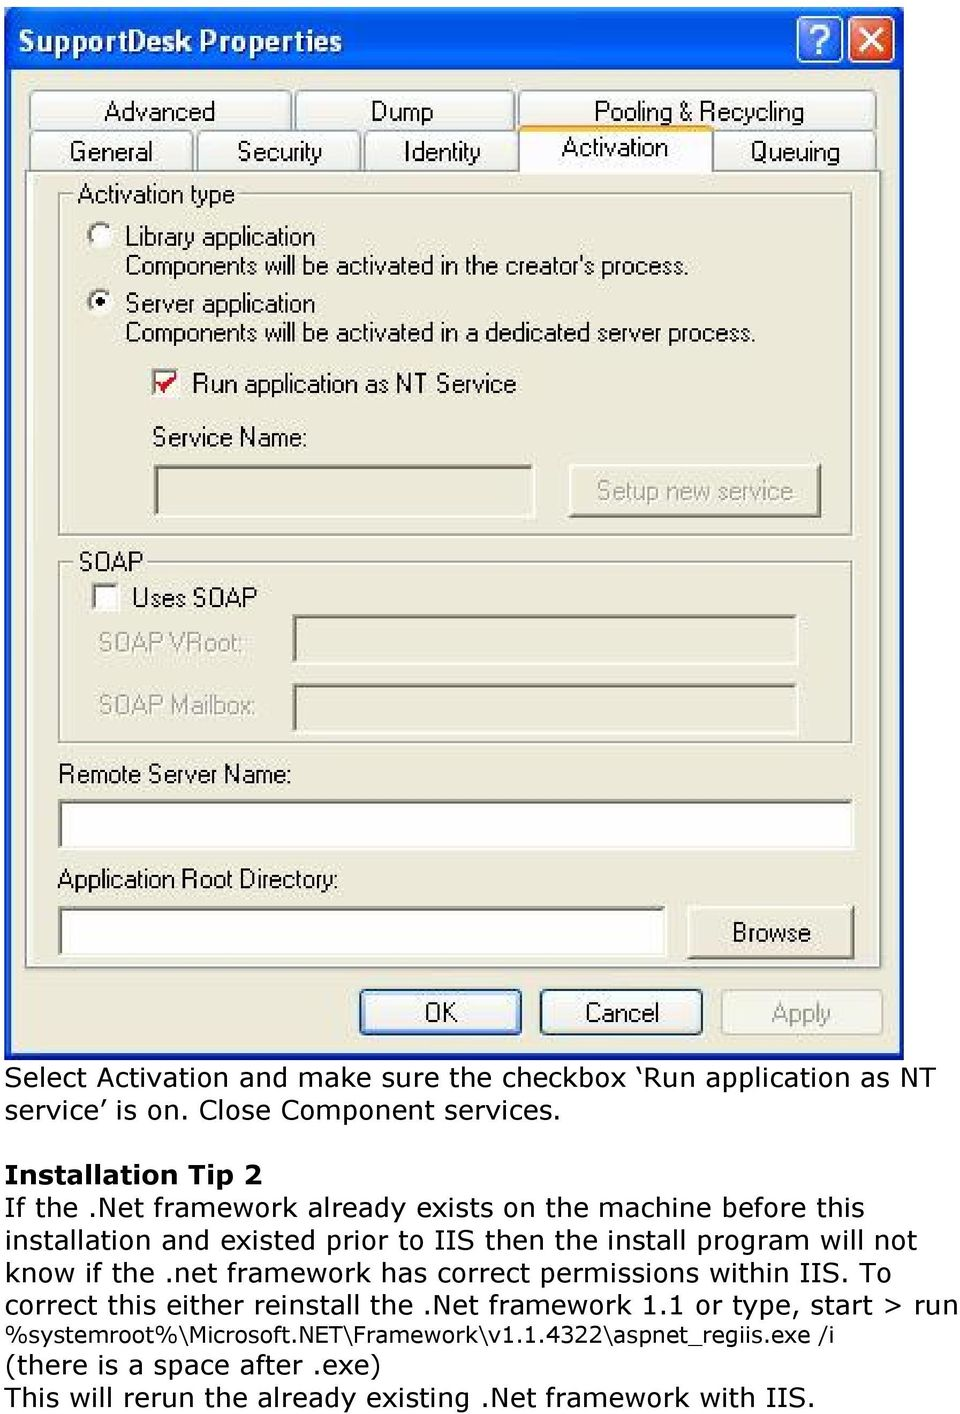 net framework has correct permissions within IIS. To correct this either reinstall the.net framework 1.